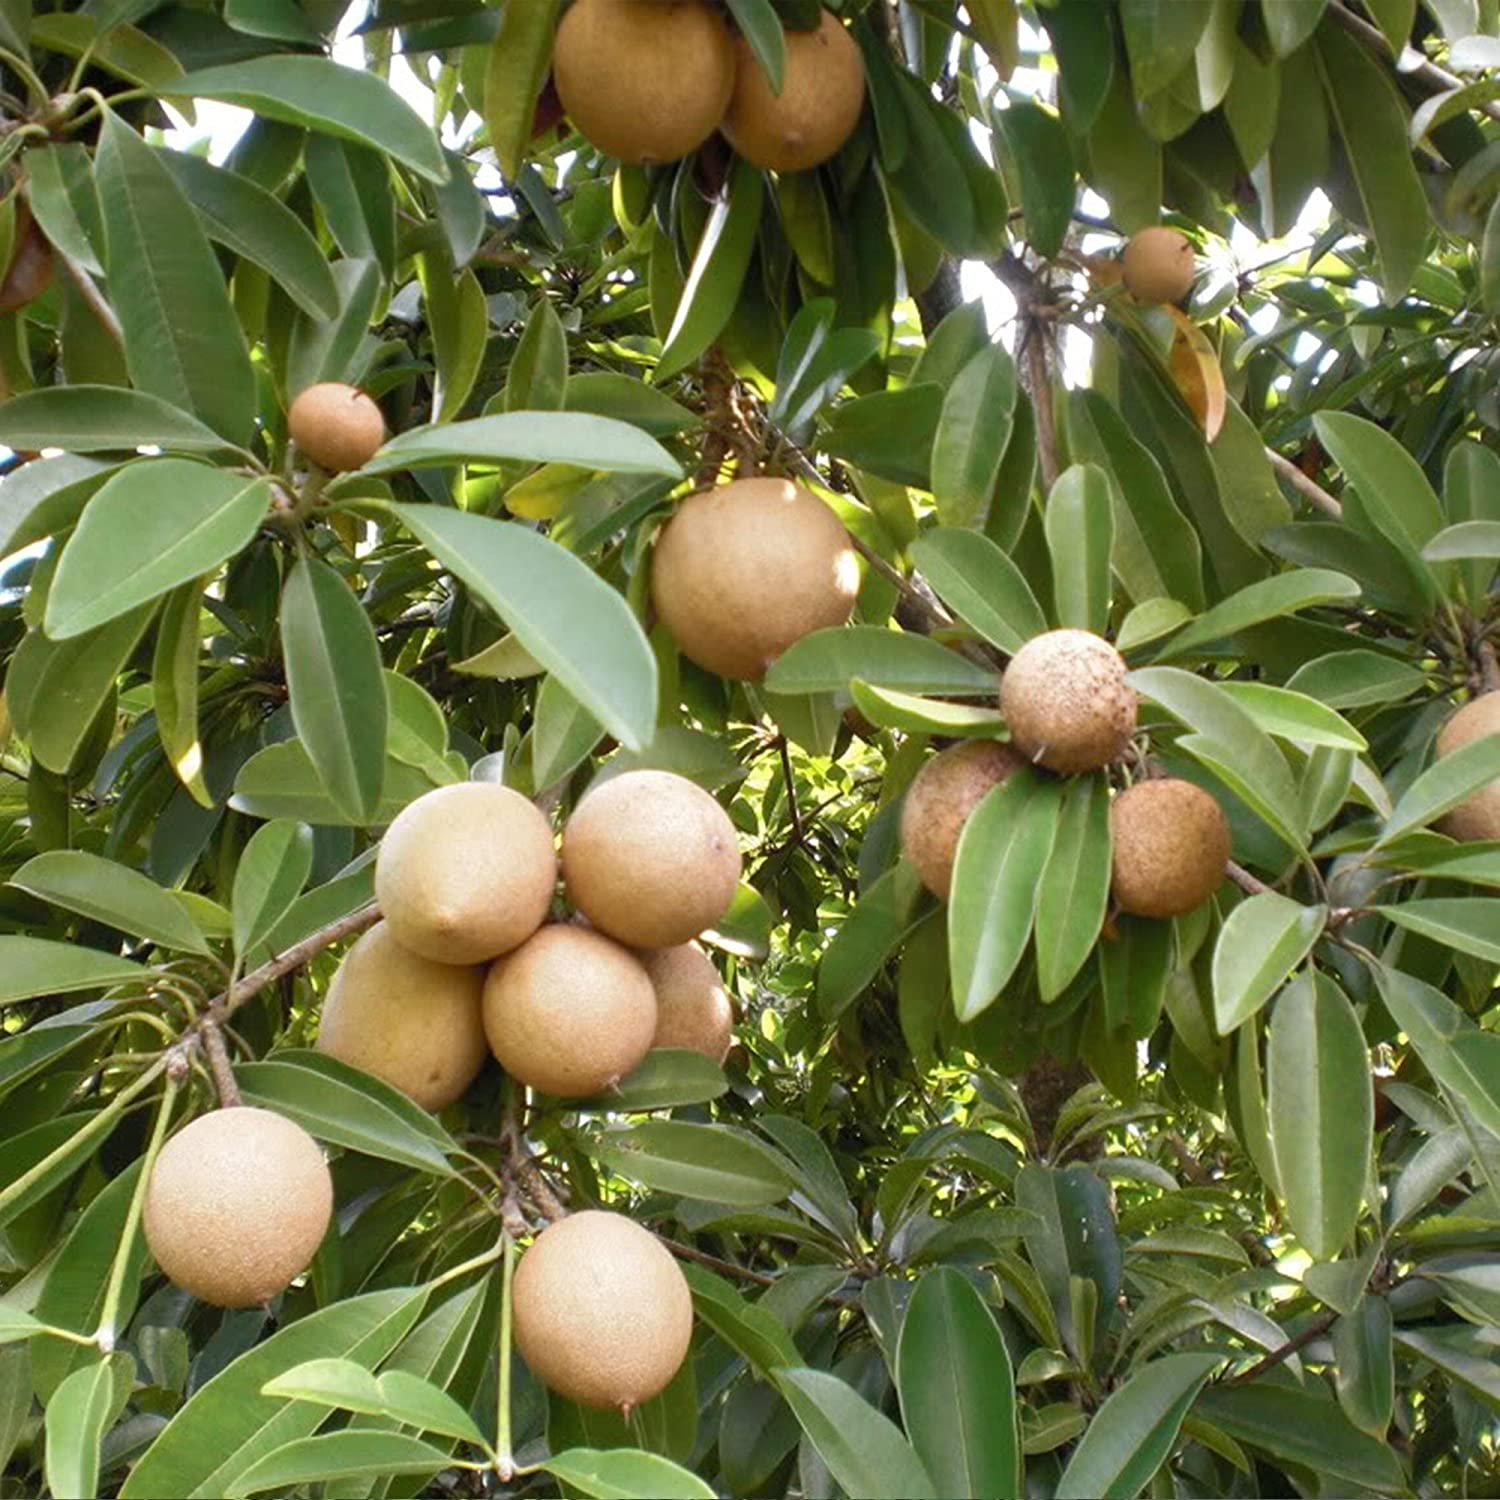 Sapodilla Tree (Manilkara zapota) 3 Rare Organic Tropical Fruit Tree Seeds